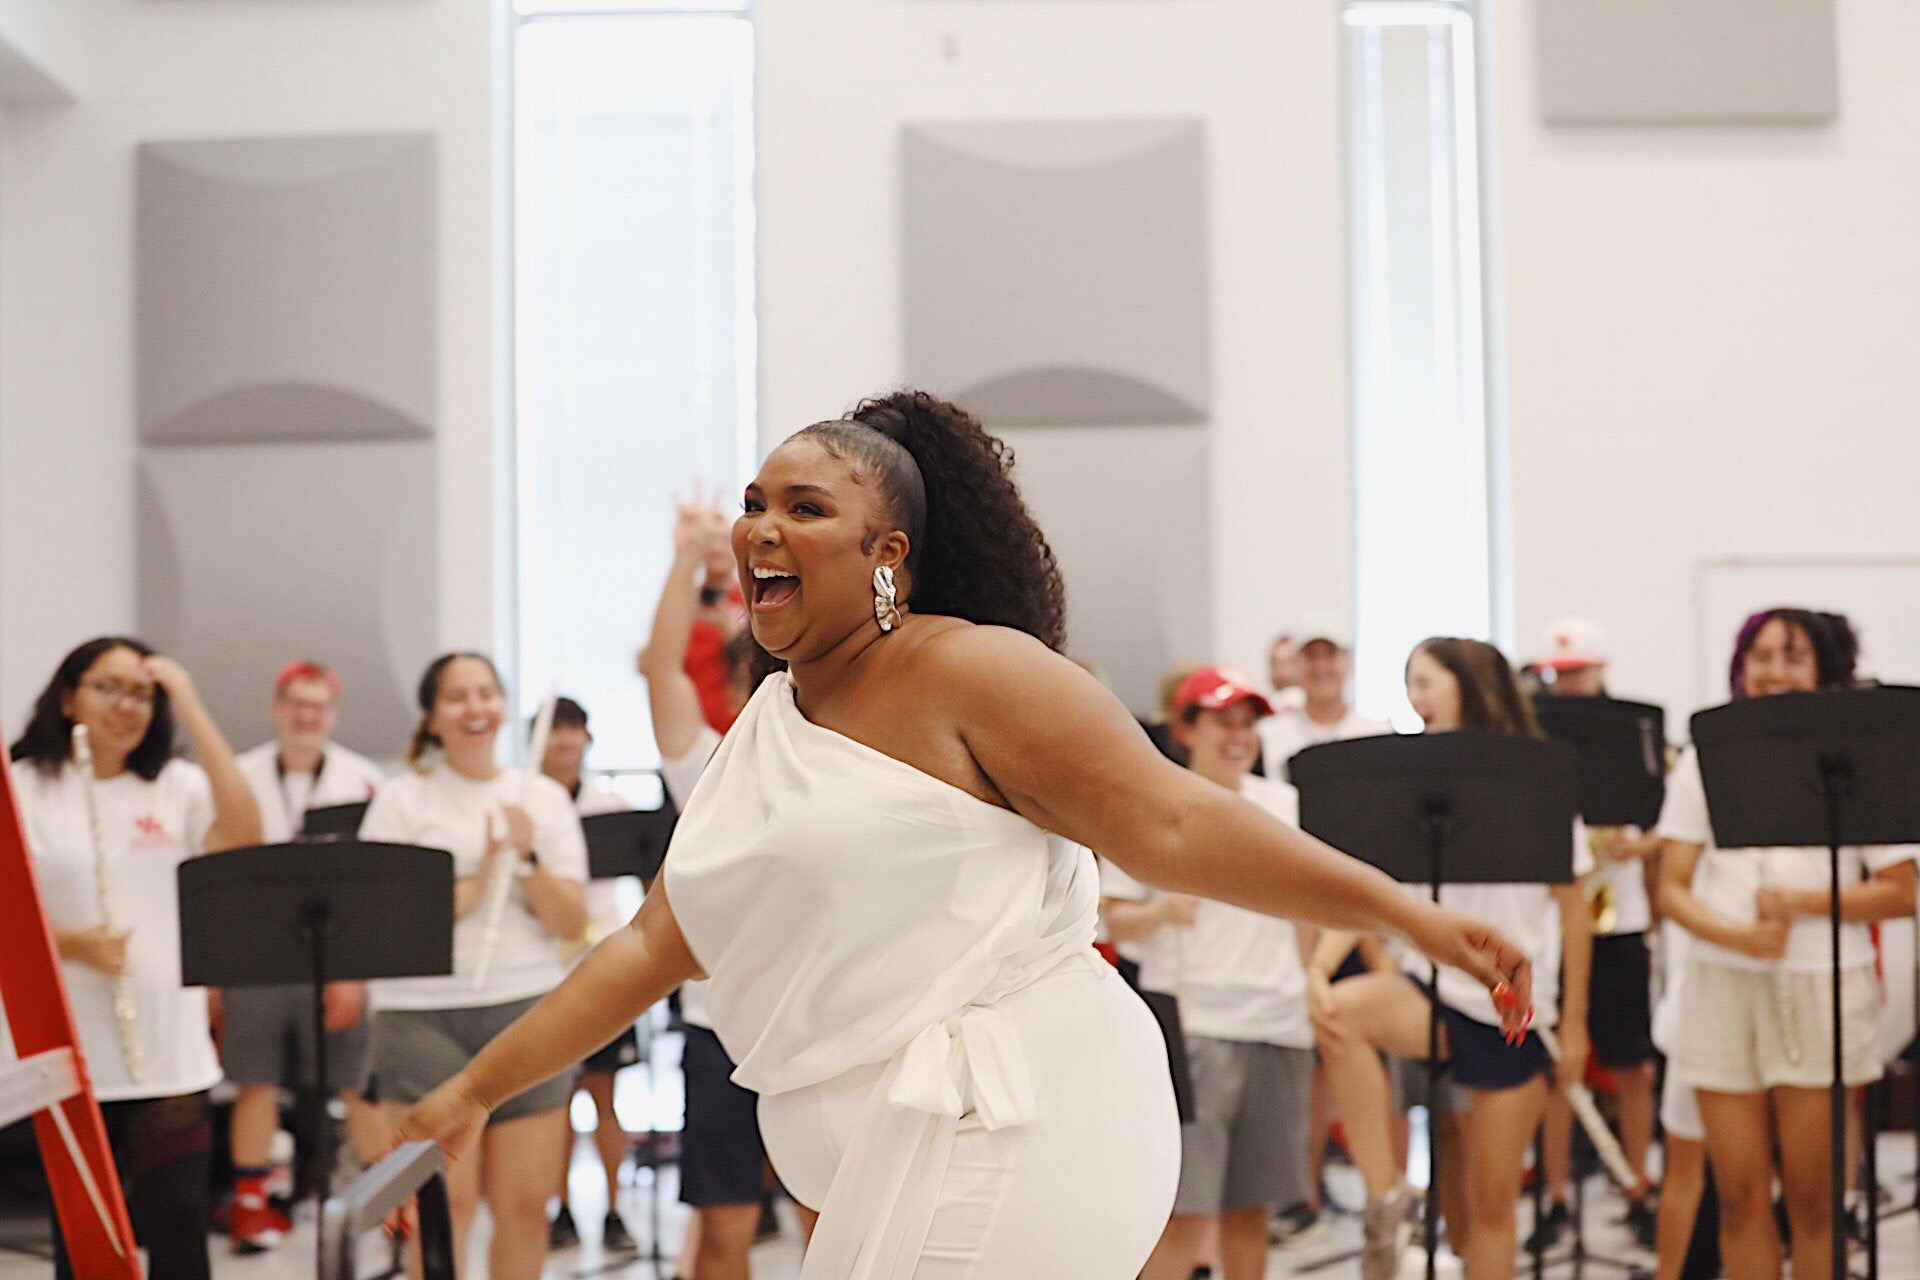 Lizzo makes local stops at Shipley, University of Houston